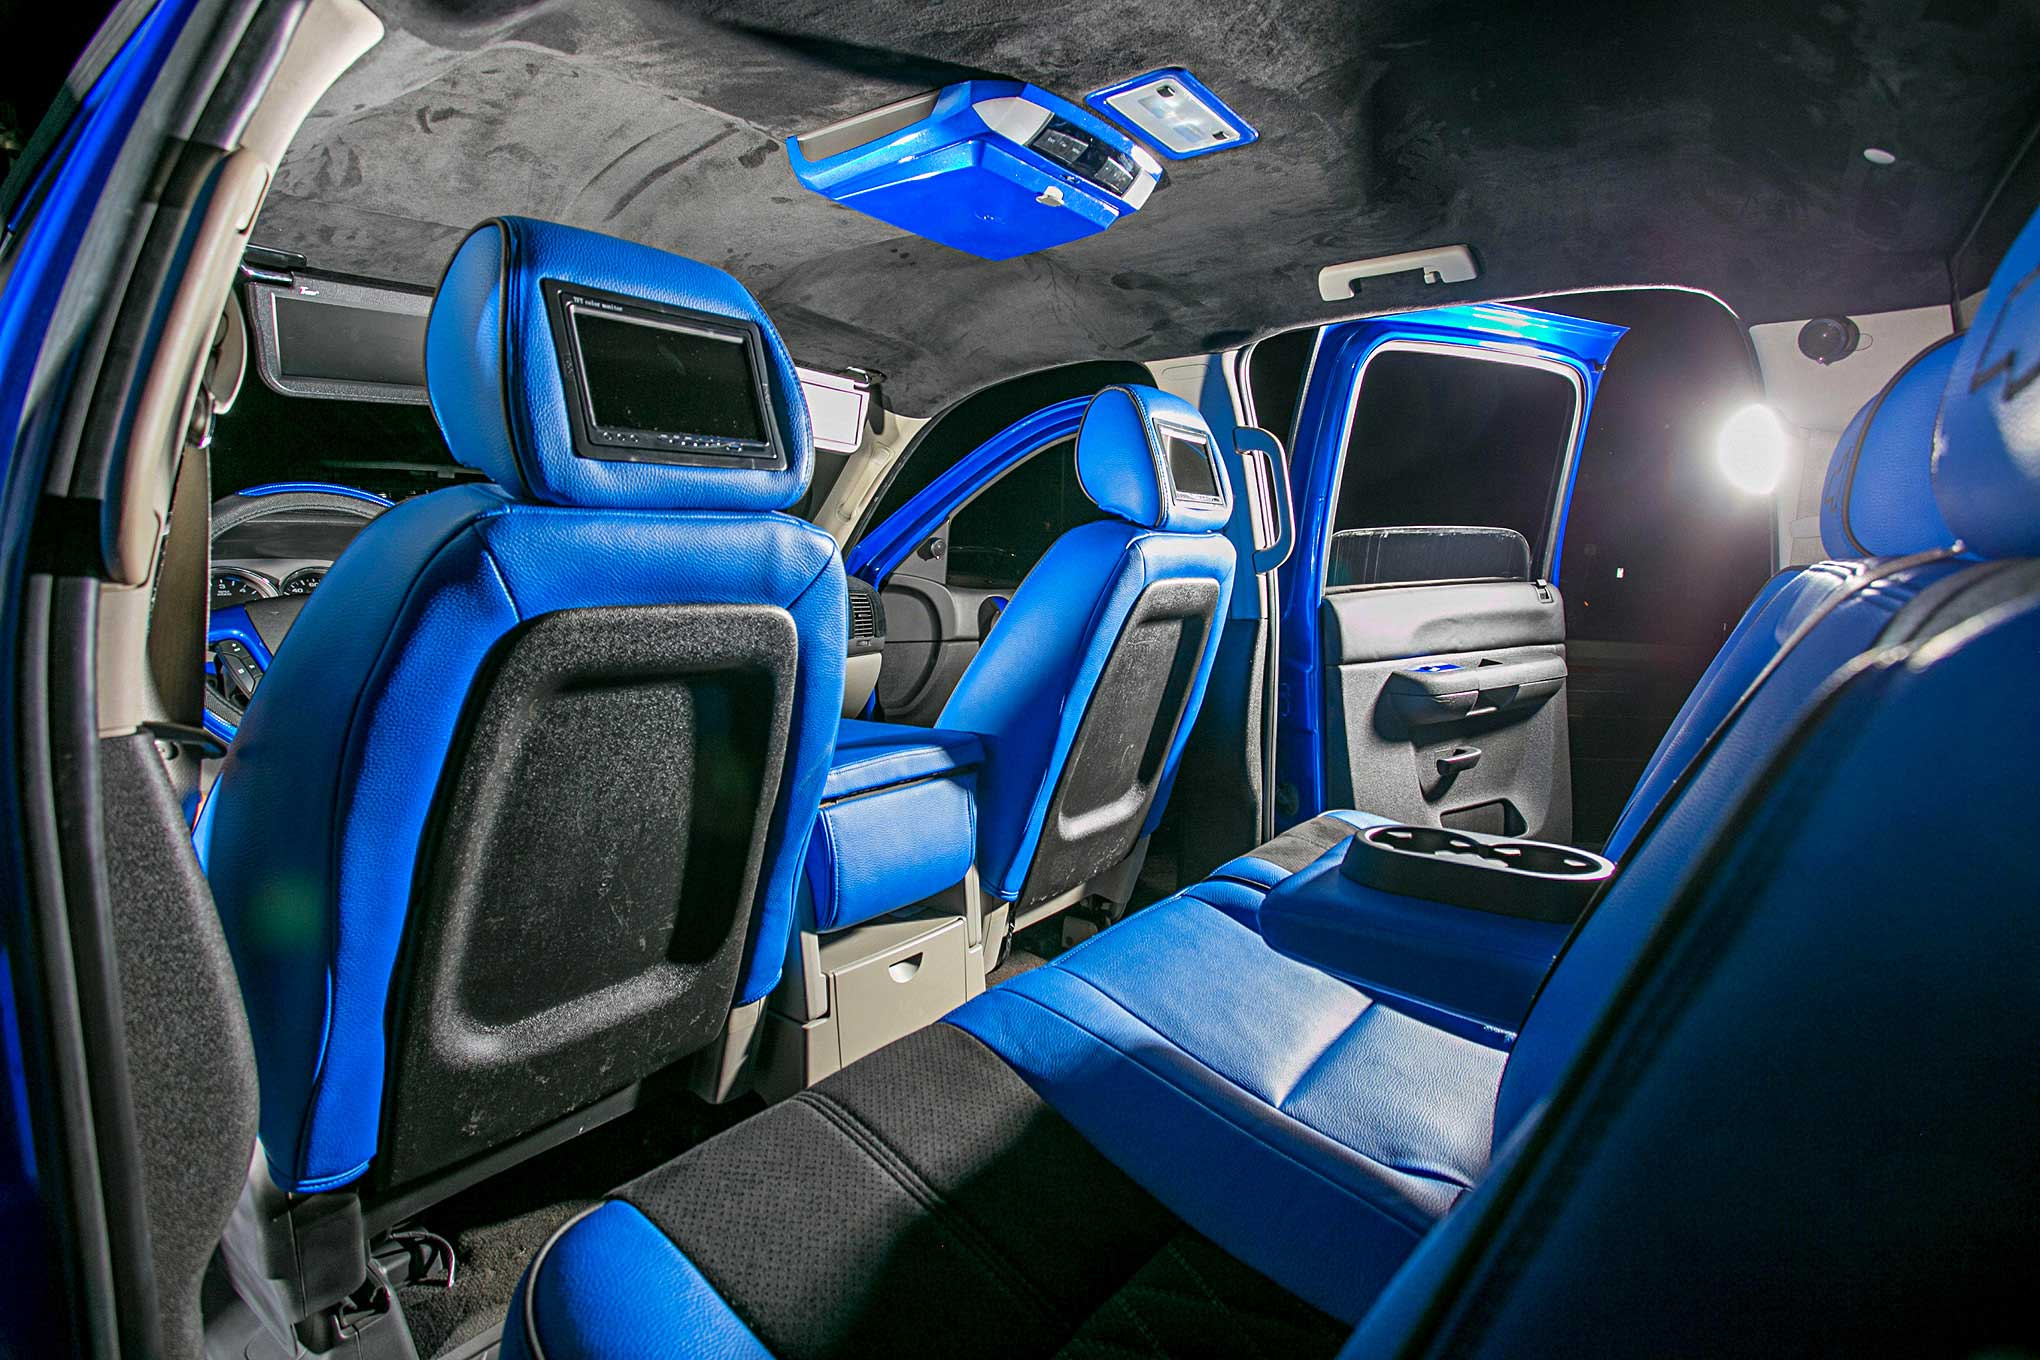 Chevrolet Silverado Blue Leather Interior on Dodge Dakota Seats